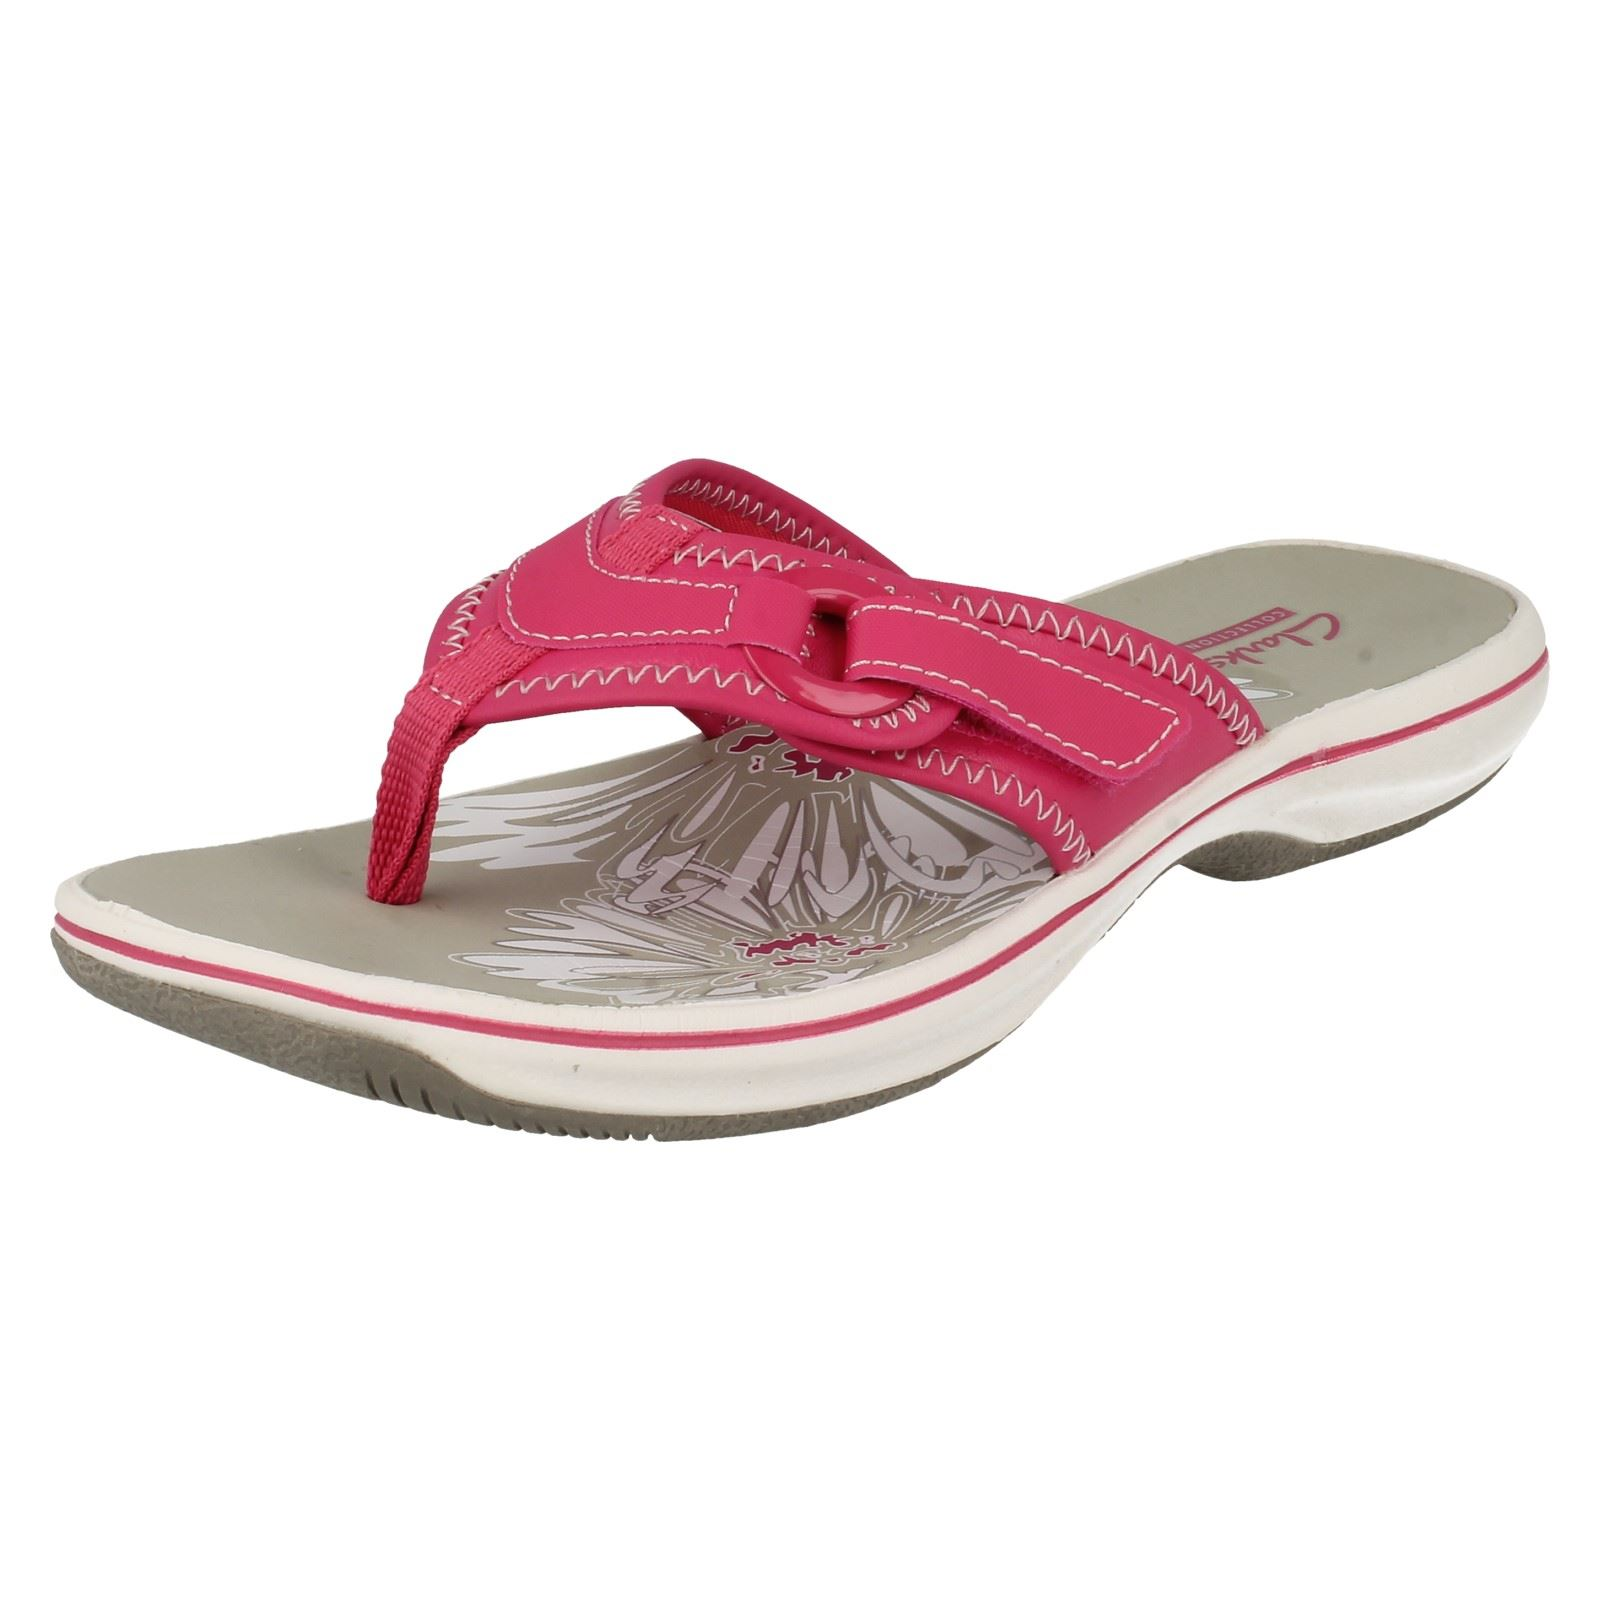 326134e2fd8e Ladies Clarks Toe Post Sandals Flip Flops  Brinkley Mila